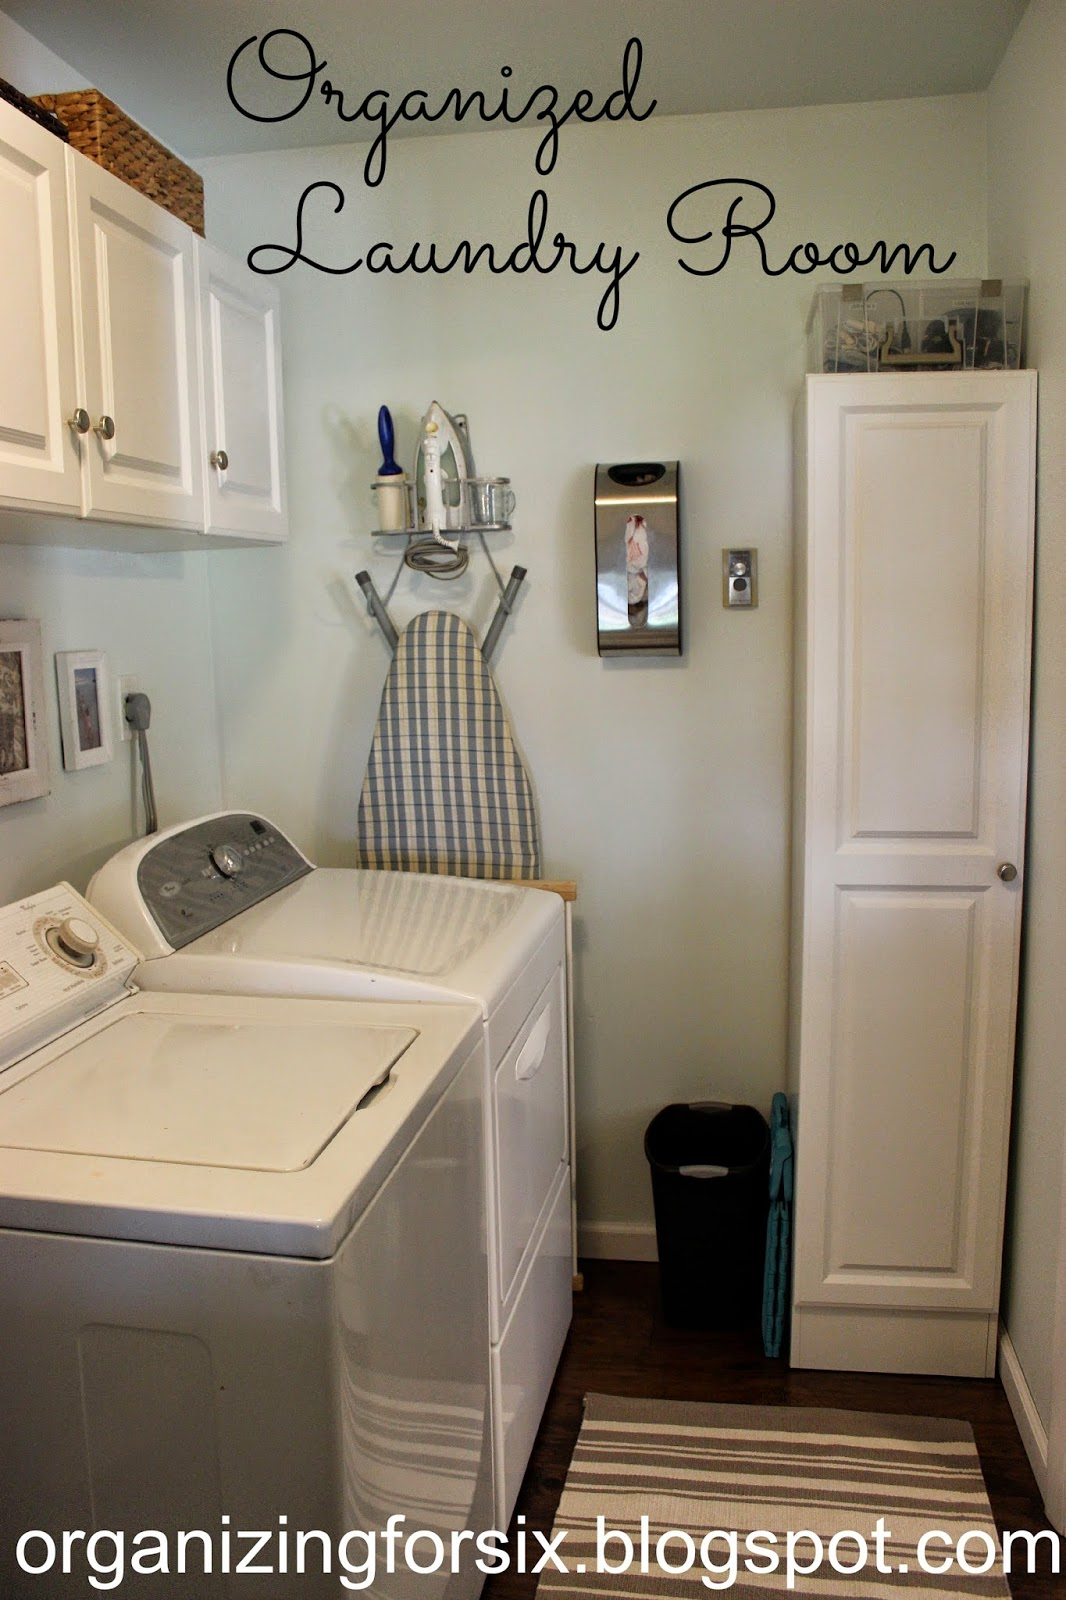 Organizing for six organized laundry room for Room organization